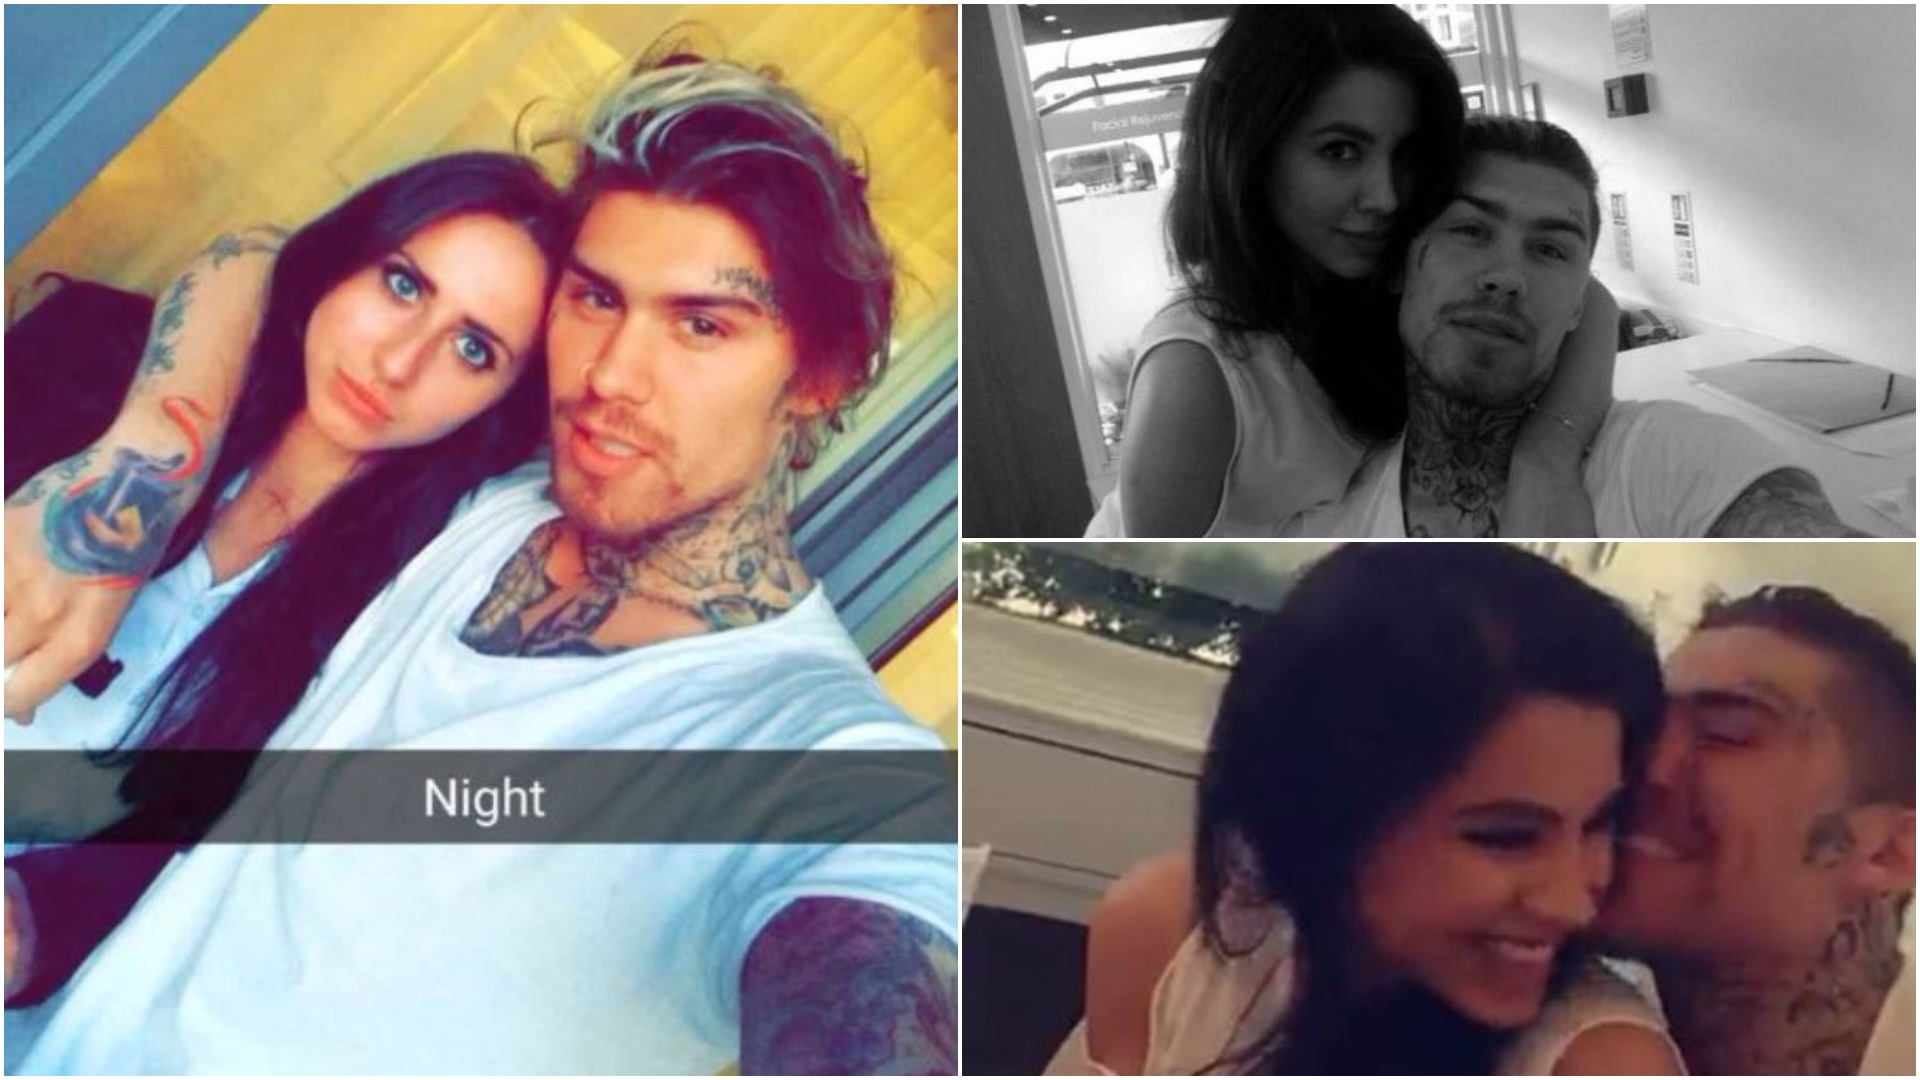 Marco Pierre White Jr shows he doesn't hang about by bagging a new lady friend after his sexcapades on Big Brother